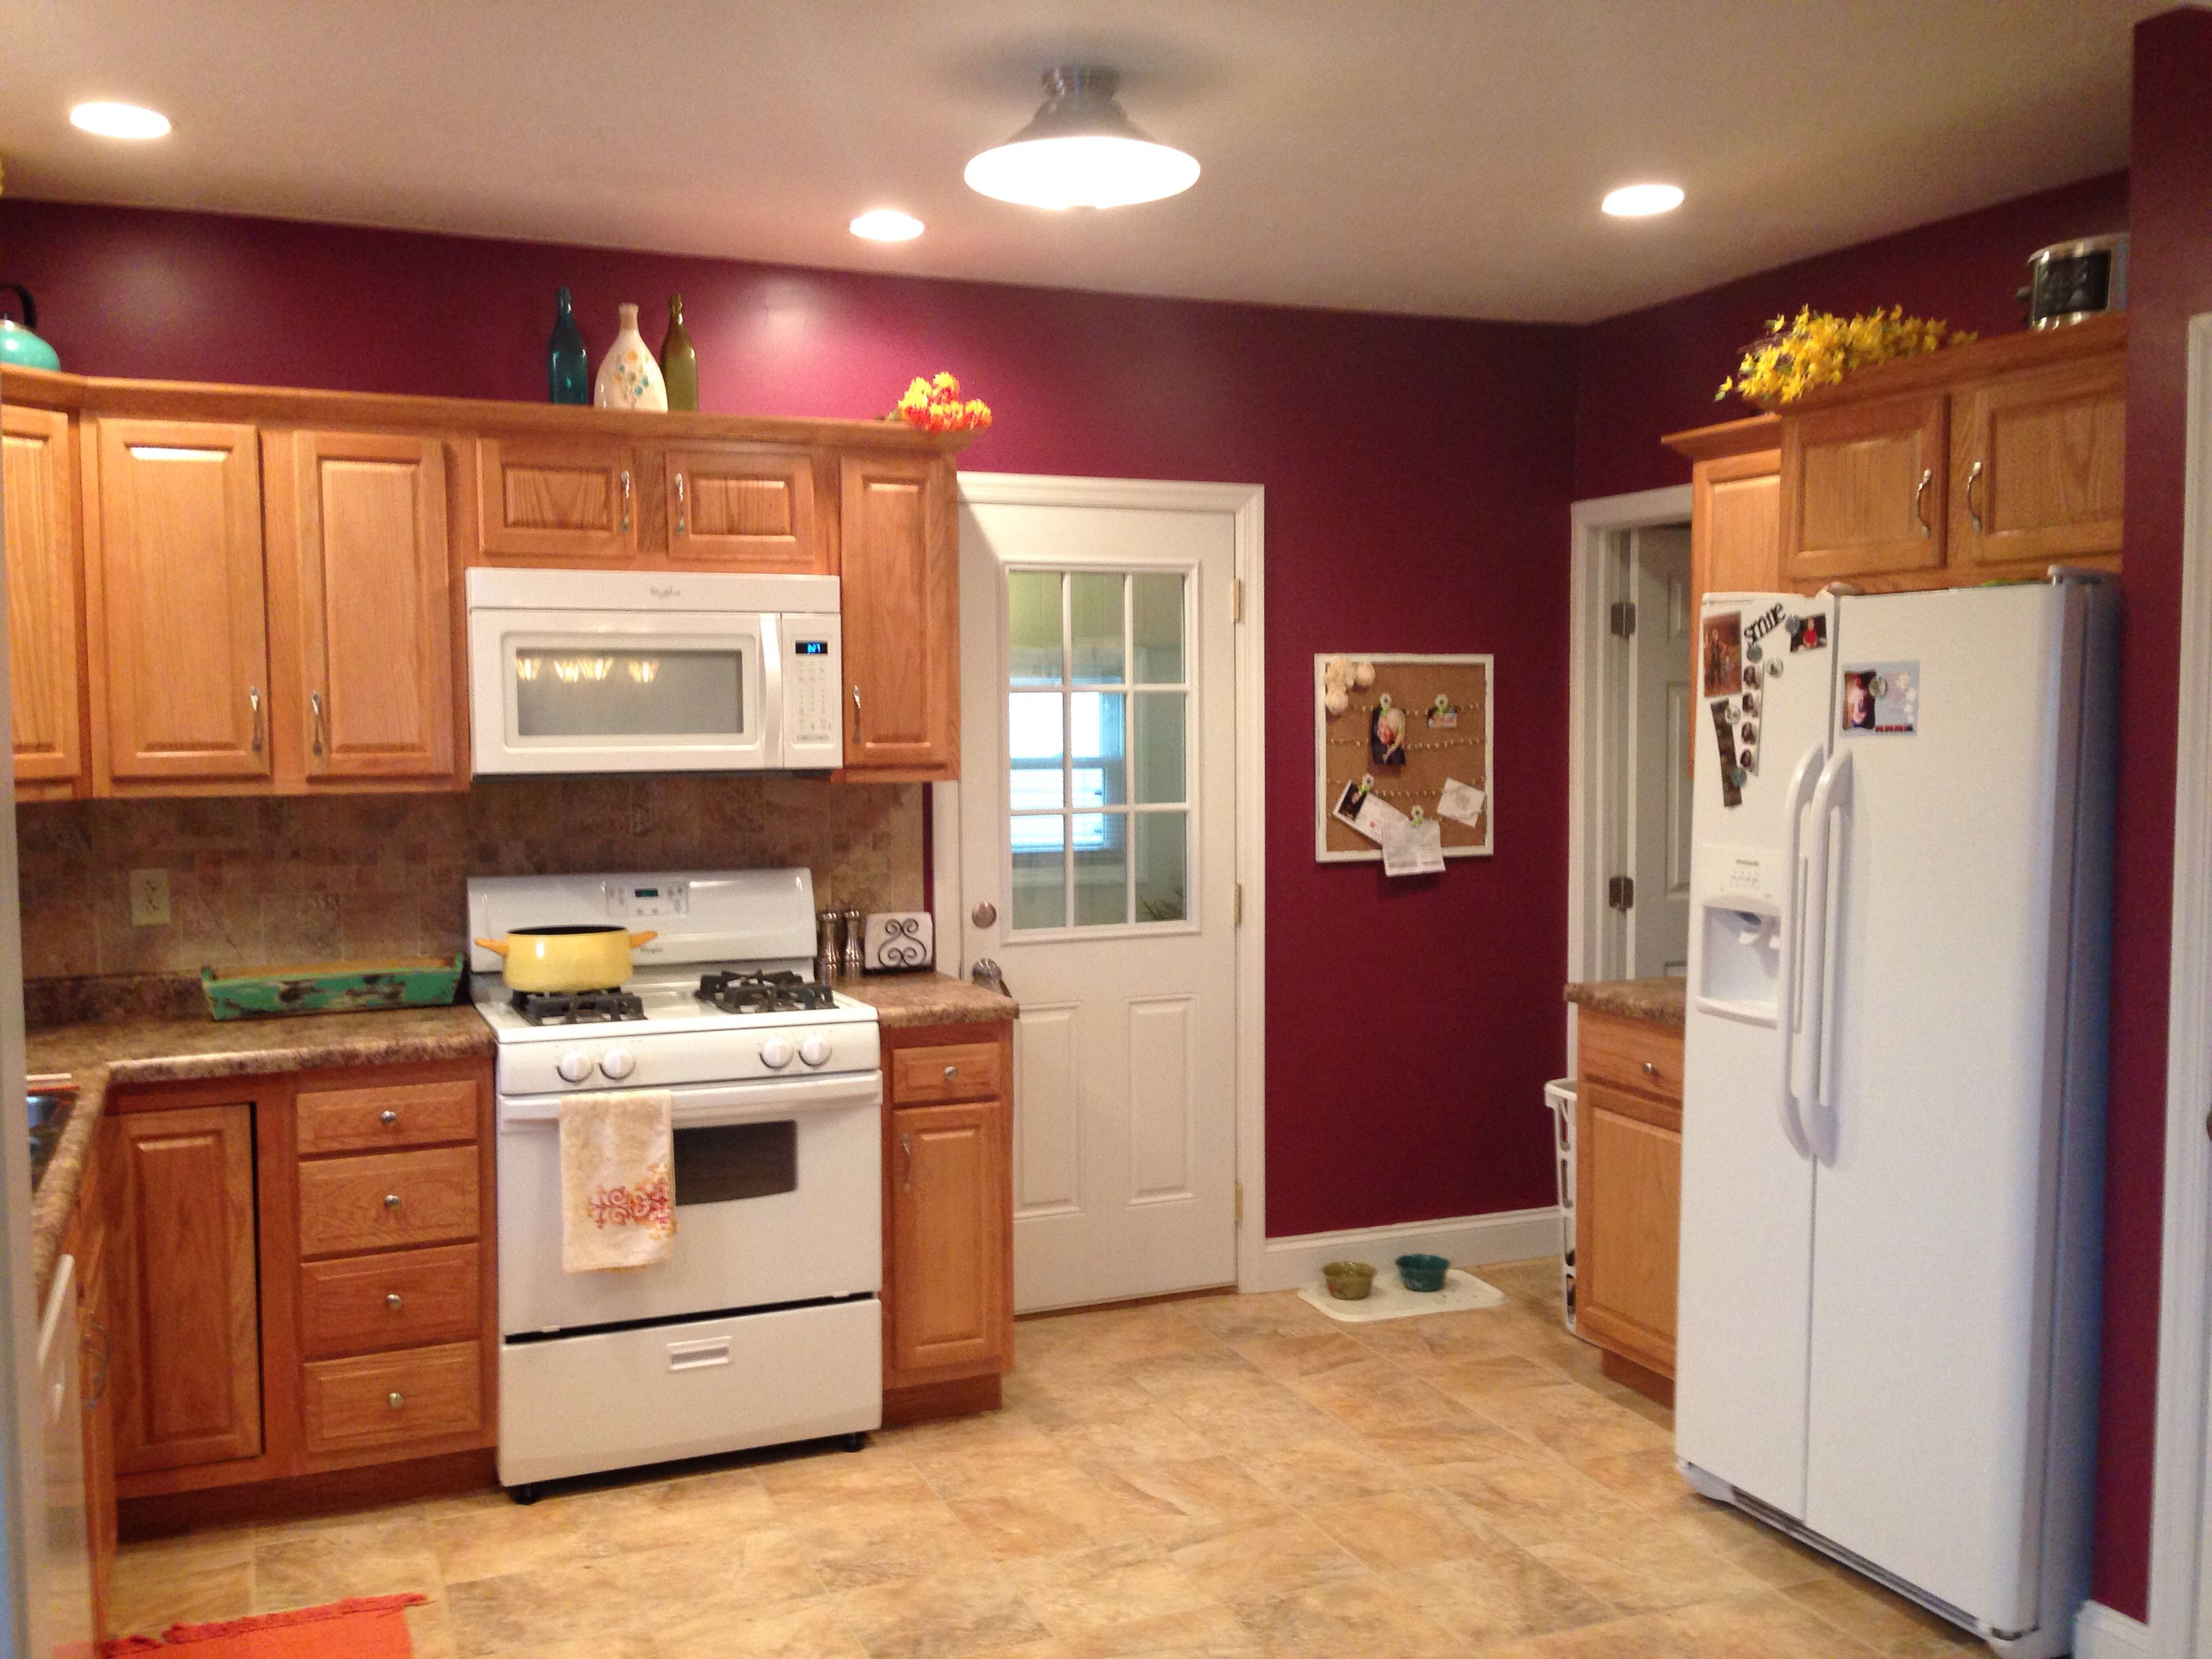 My kitchen behr classic berry my house diys pinterest behr kitchens and idea paint - Behr kitchen paint colors ...